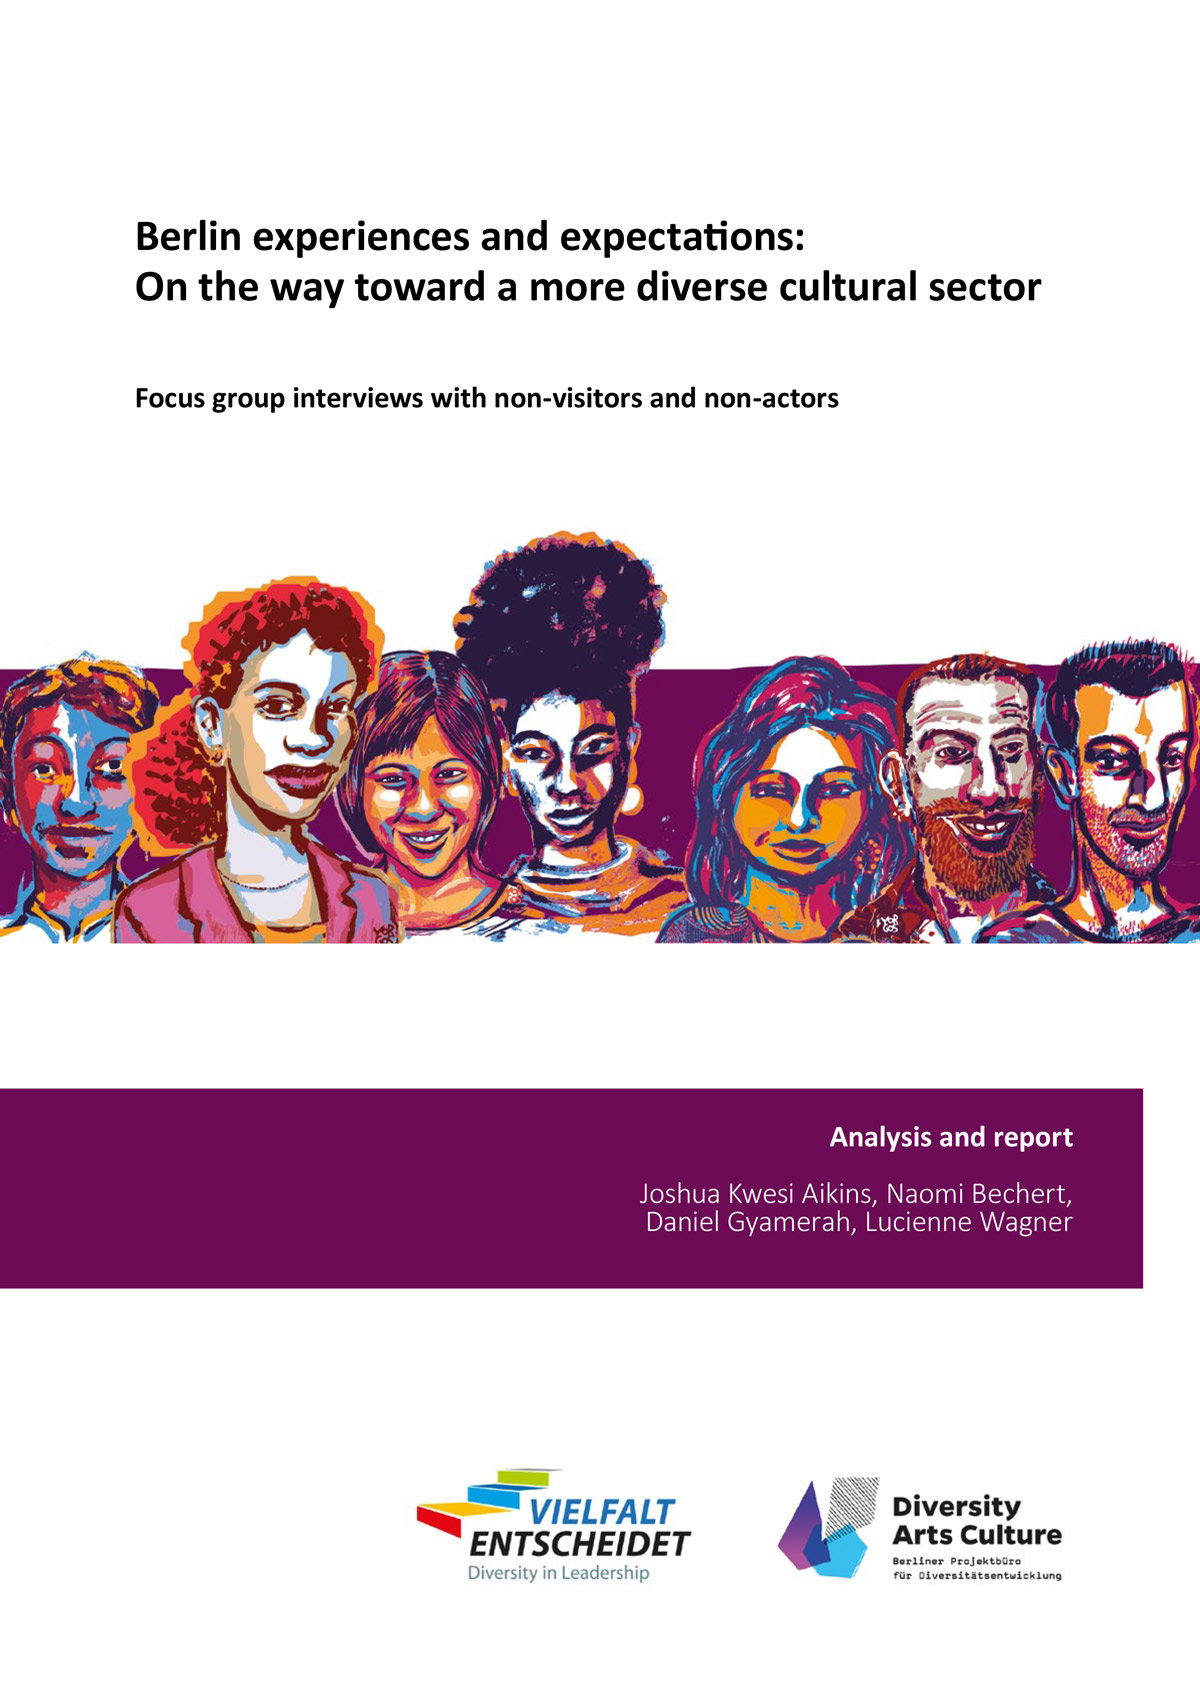 Berlin experiences and expectations: On the way toward a more diverse cultural sector